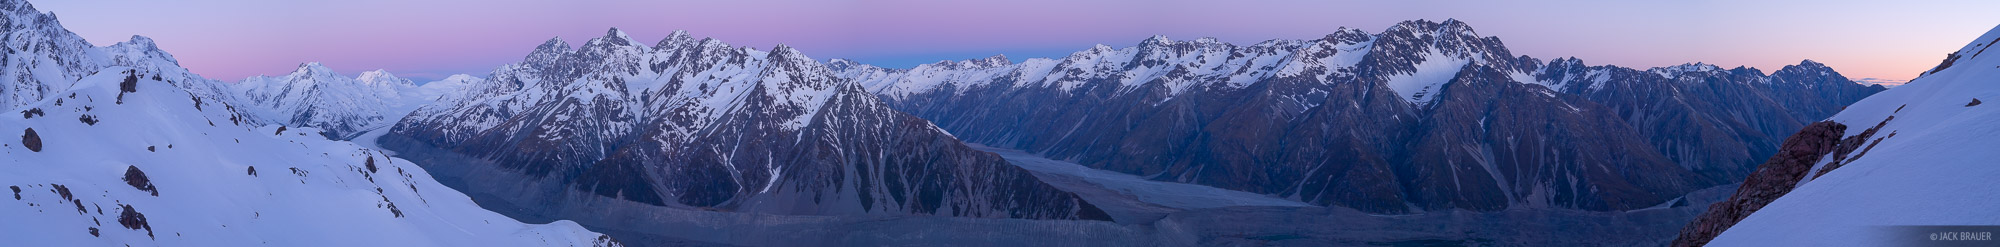 New Zealand, Southern Alps, Tasman Glacier, panorama, photo